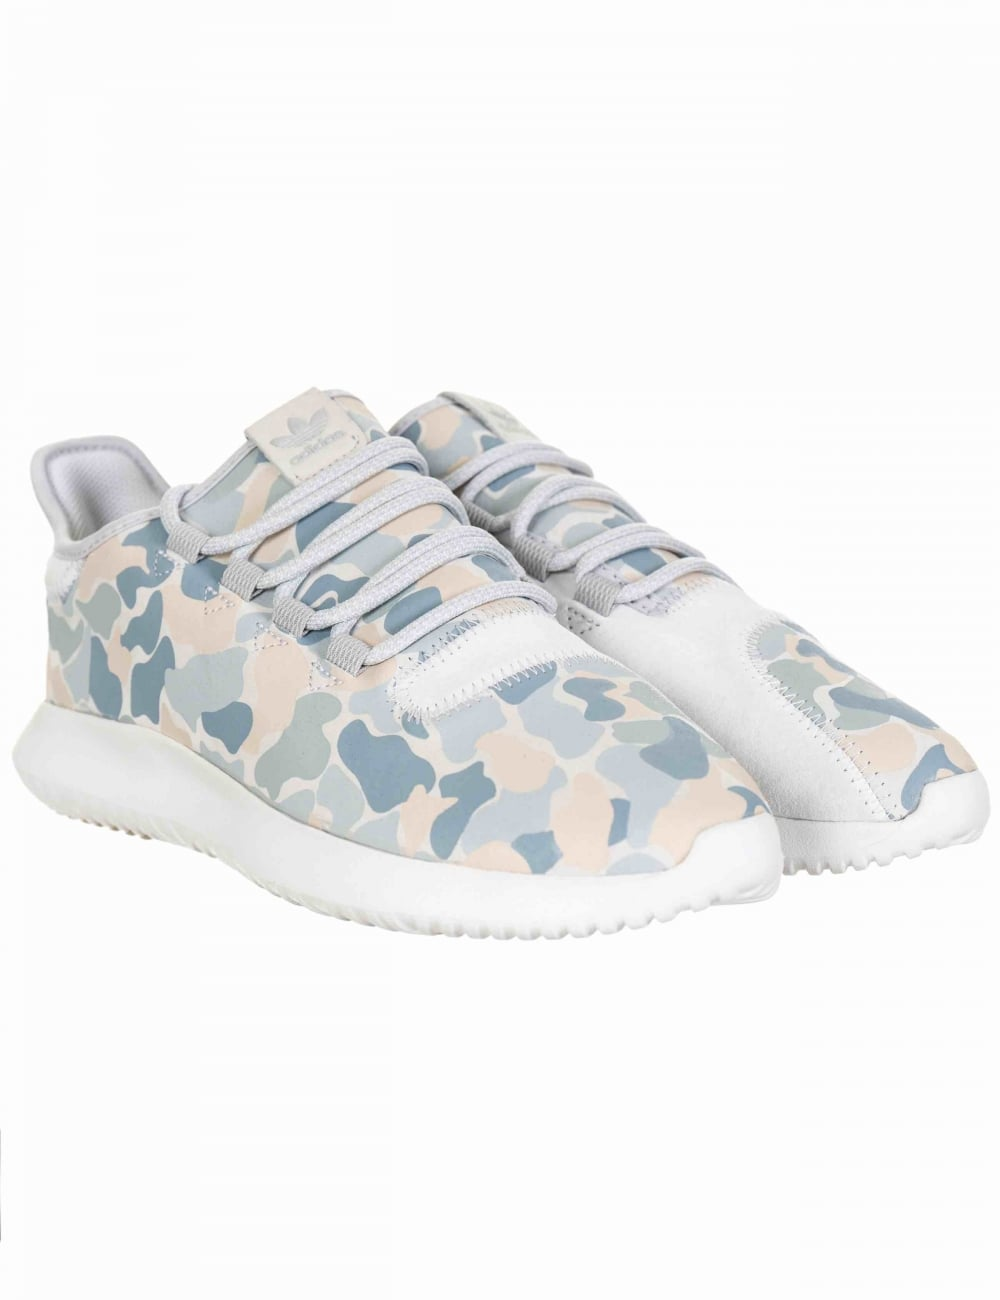 Tubular Shadow Shoes - White Camo